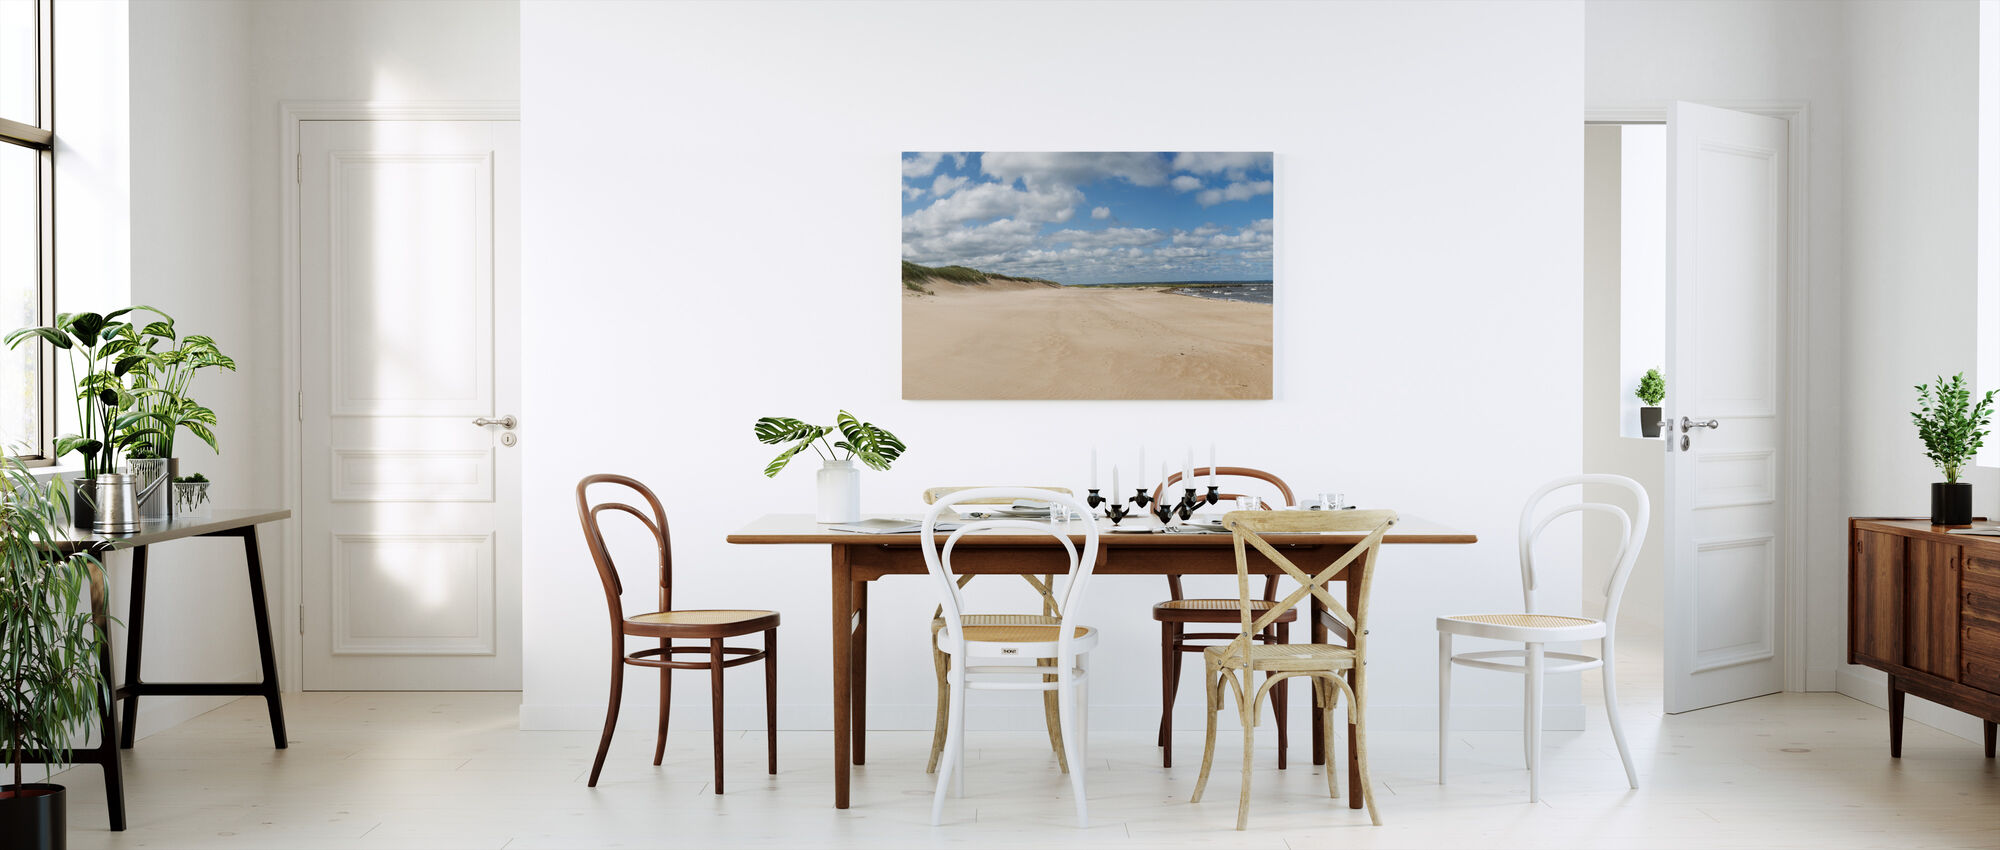 Vejbystrand in Skåne, Sweden - Canvas print - Kitchen